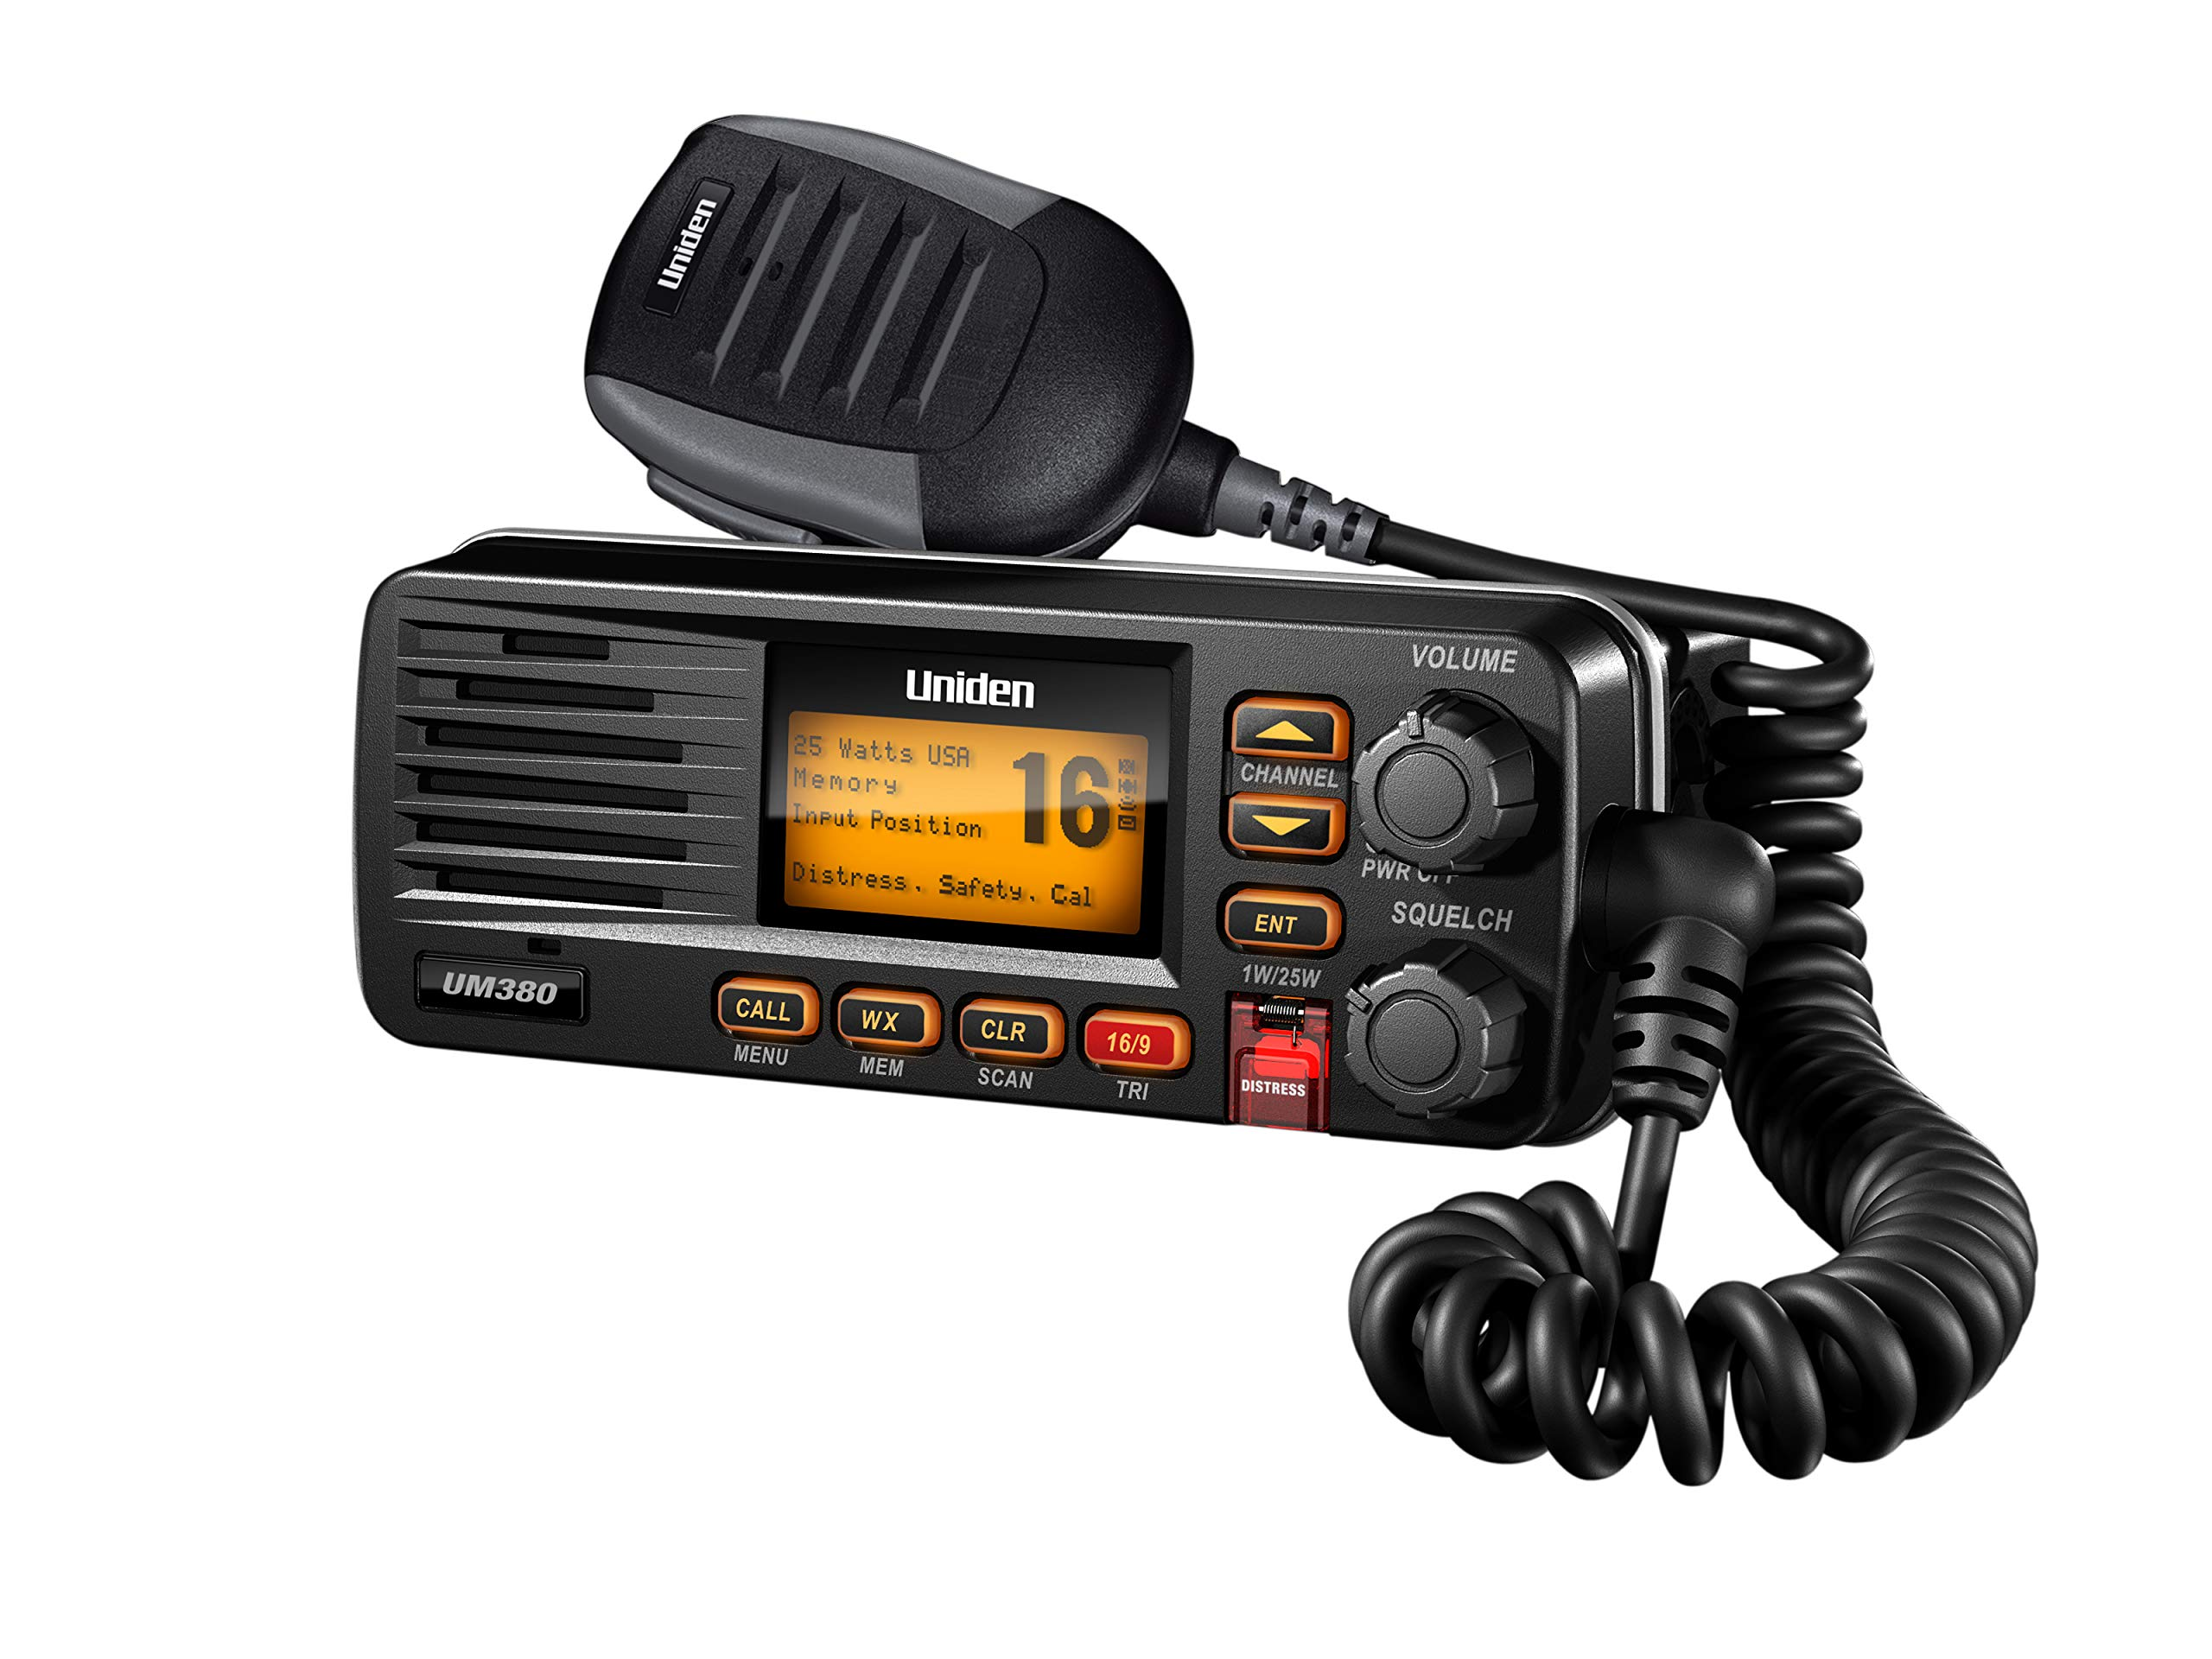 Uniden UM380 25 Watt Fixed Mount Marine VHF Radio, Class D, DSC, Waterproof Level IPX4/JIS4, S,A,M,E, Emergency/ NOAA Weather Alert, USA/International and Canadian Marine Channels, Color Black